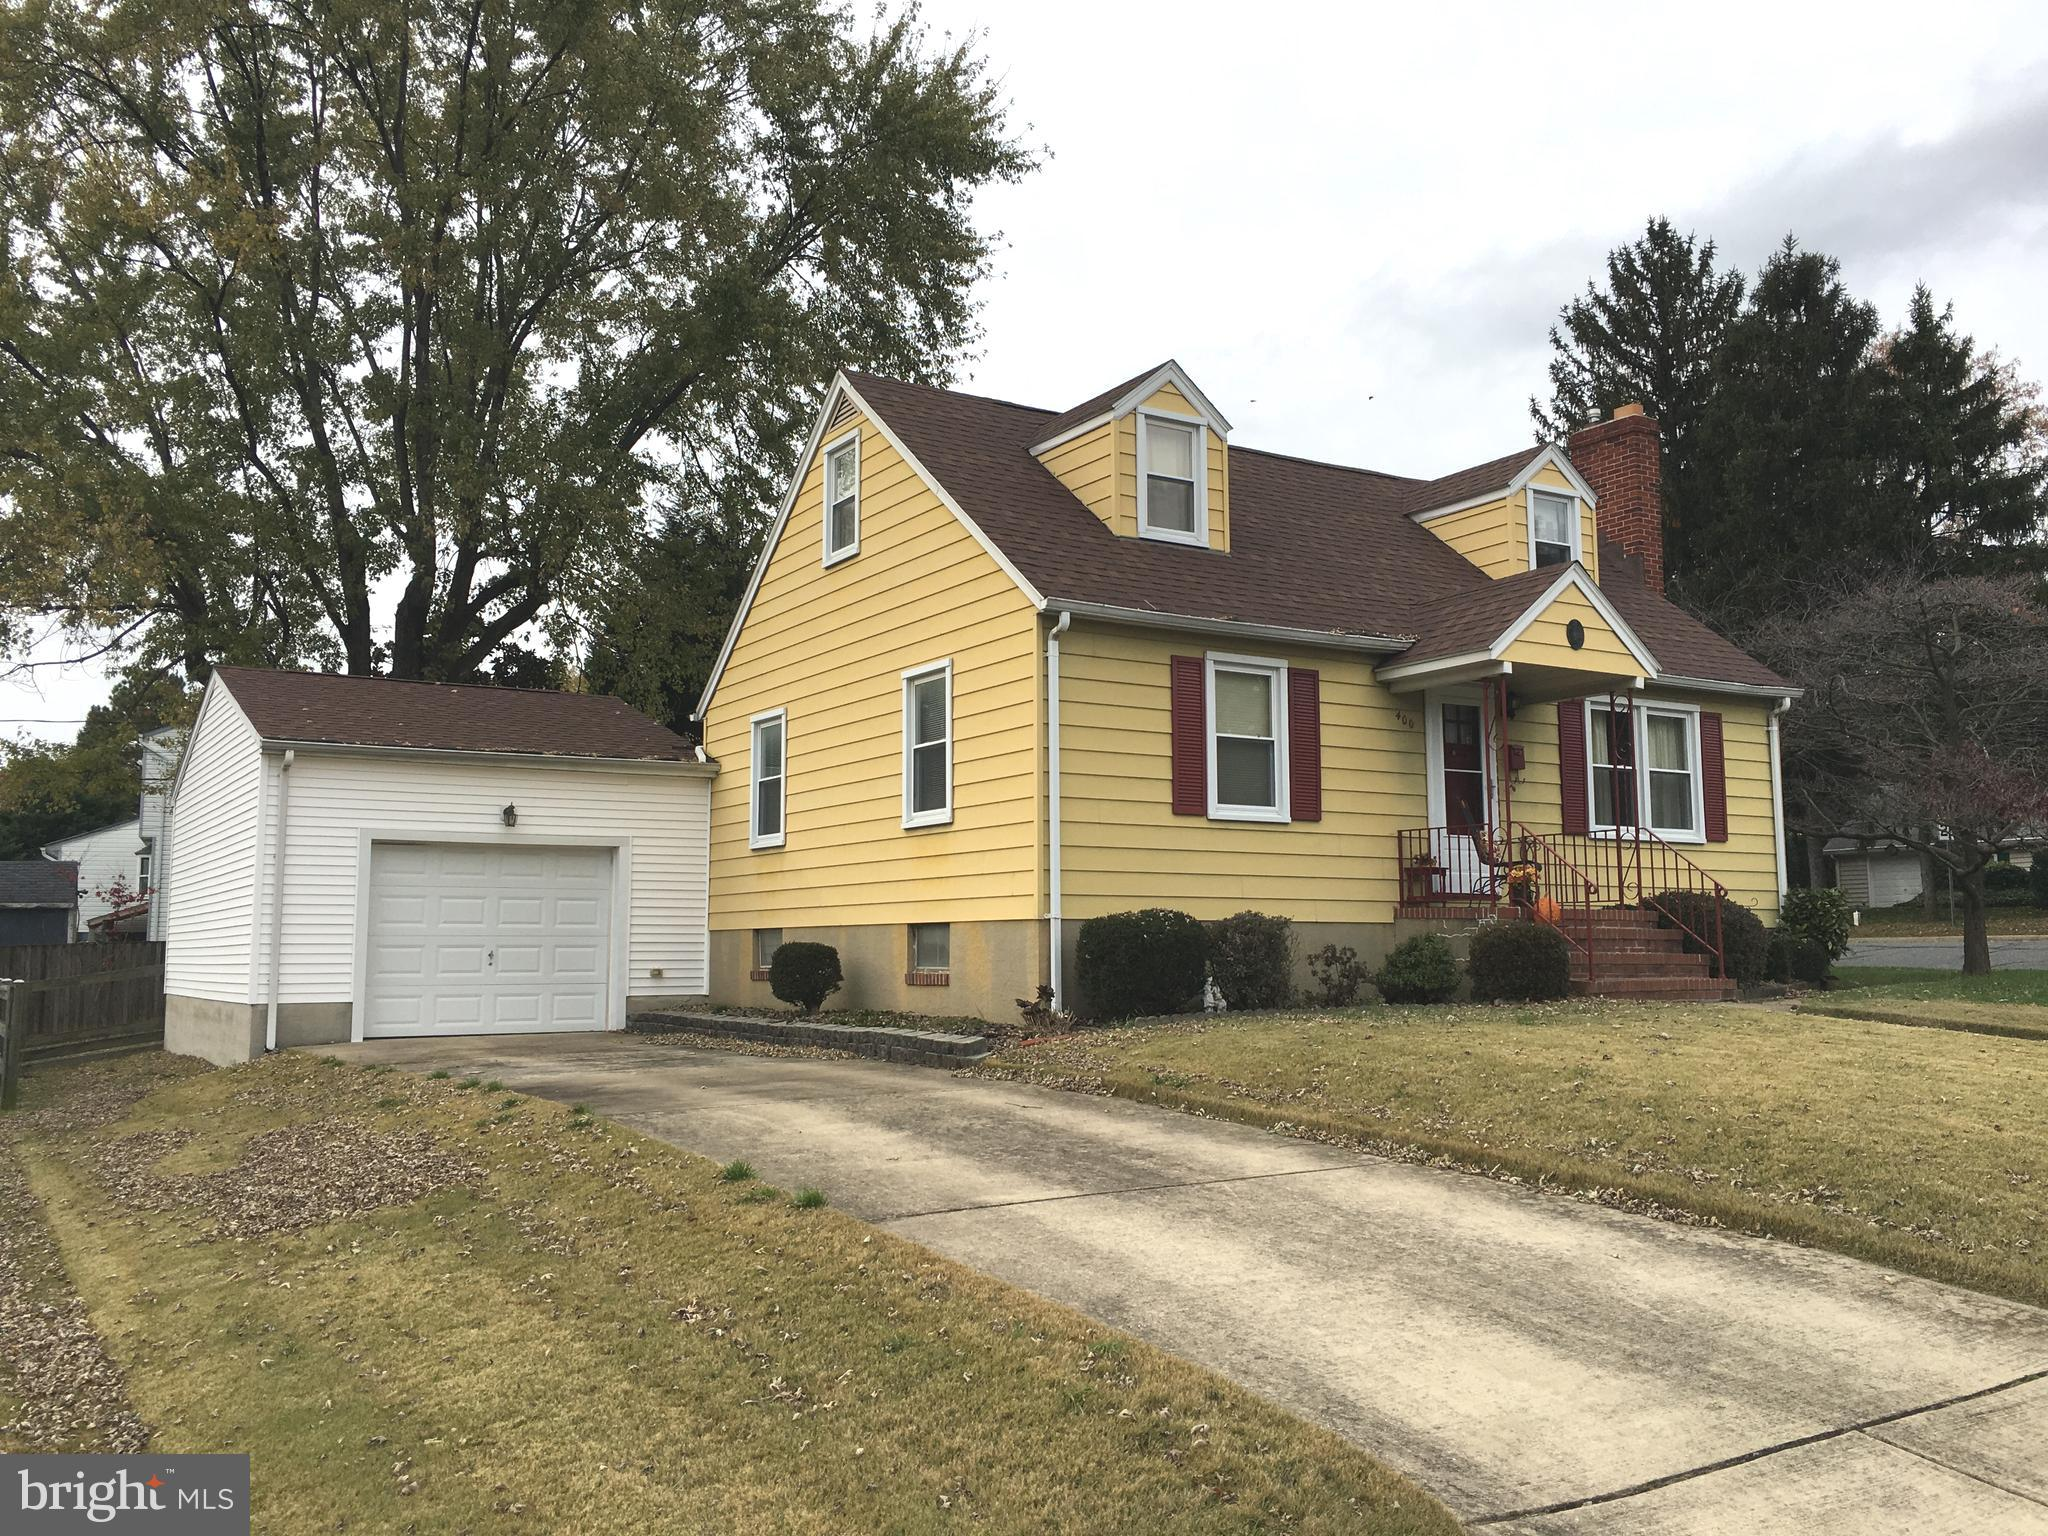 400 SYCAMORE ROAD, LINTHICUM HEIGHTS, MD 21090